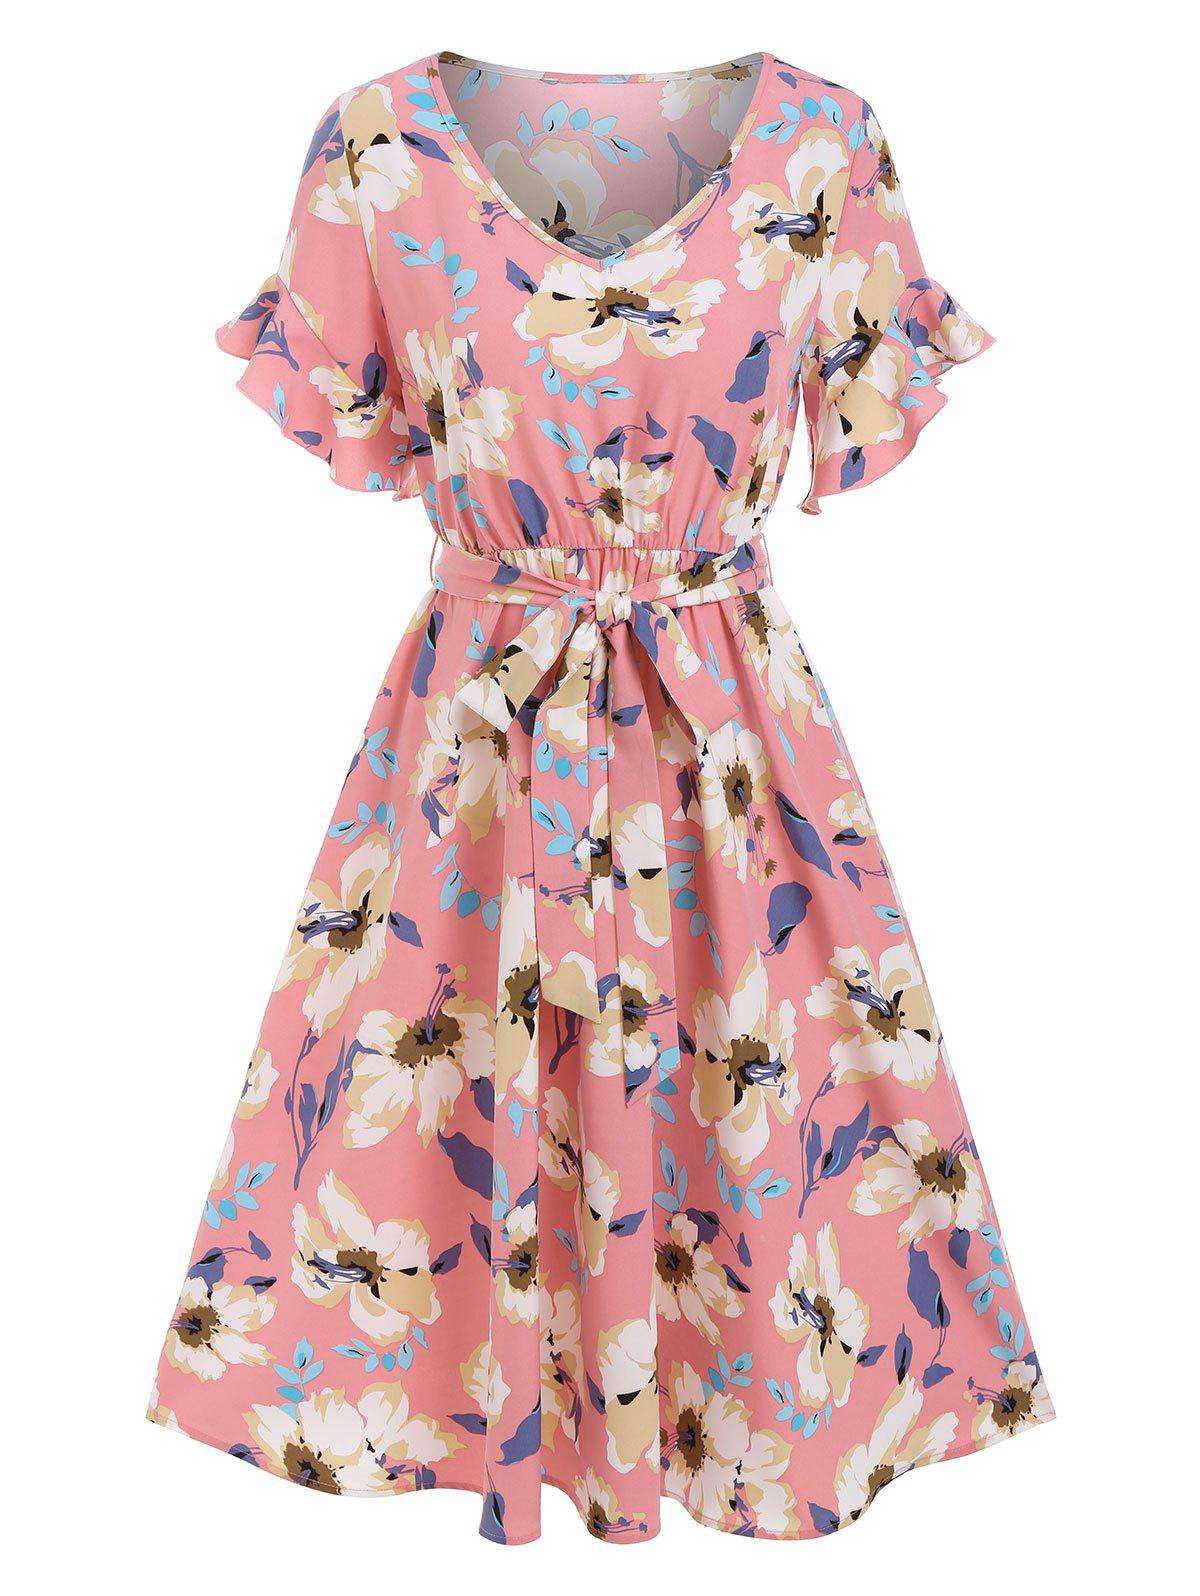 V Neck Flower Print Belted Dress - LIGHT PINK XXL